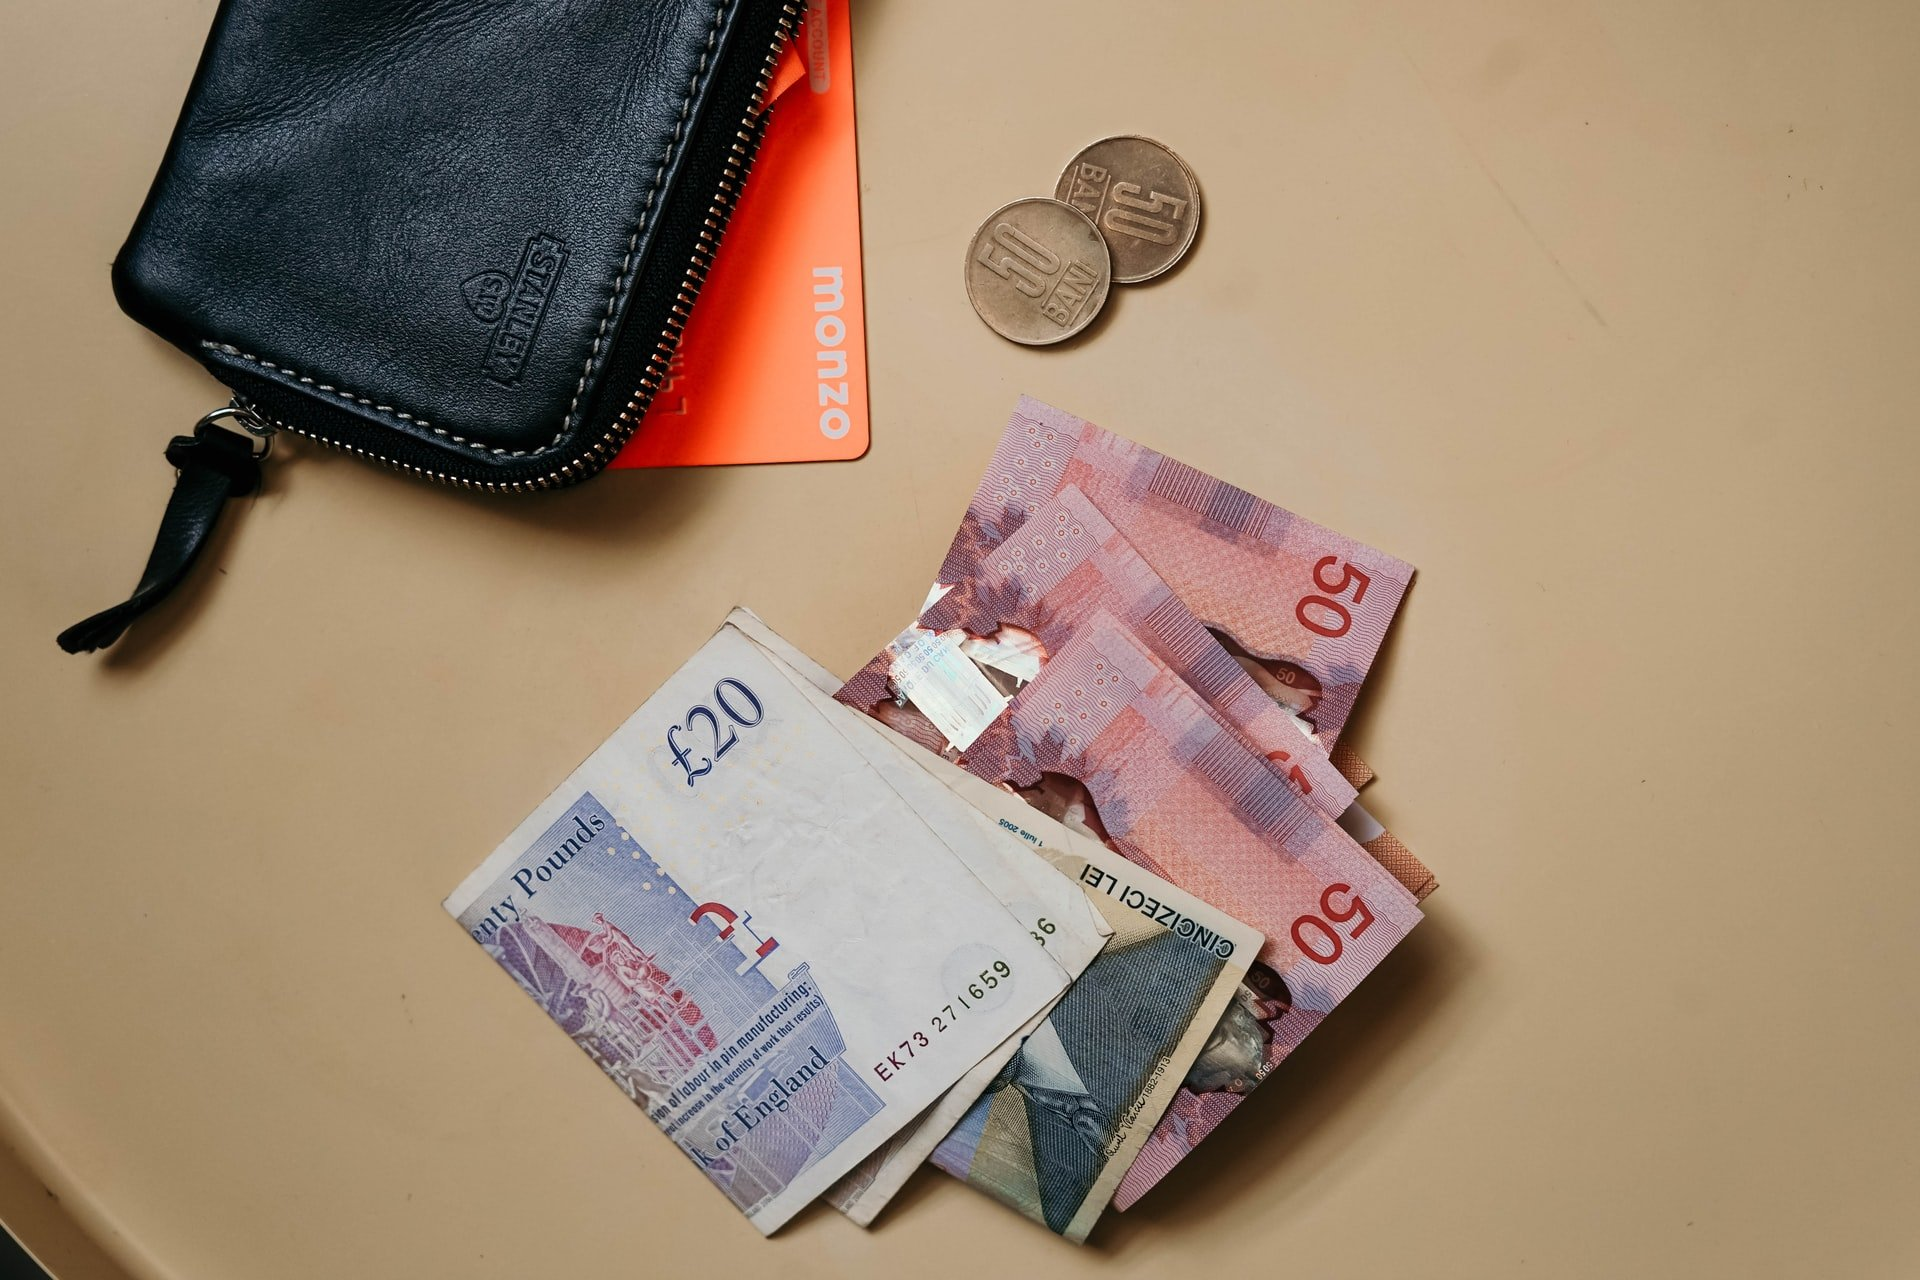 Wallet with banknotes and coins on table   Source: Unsplash